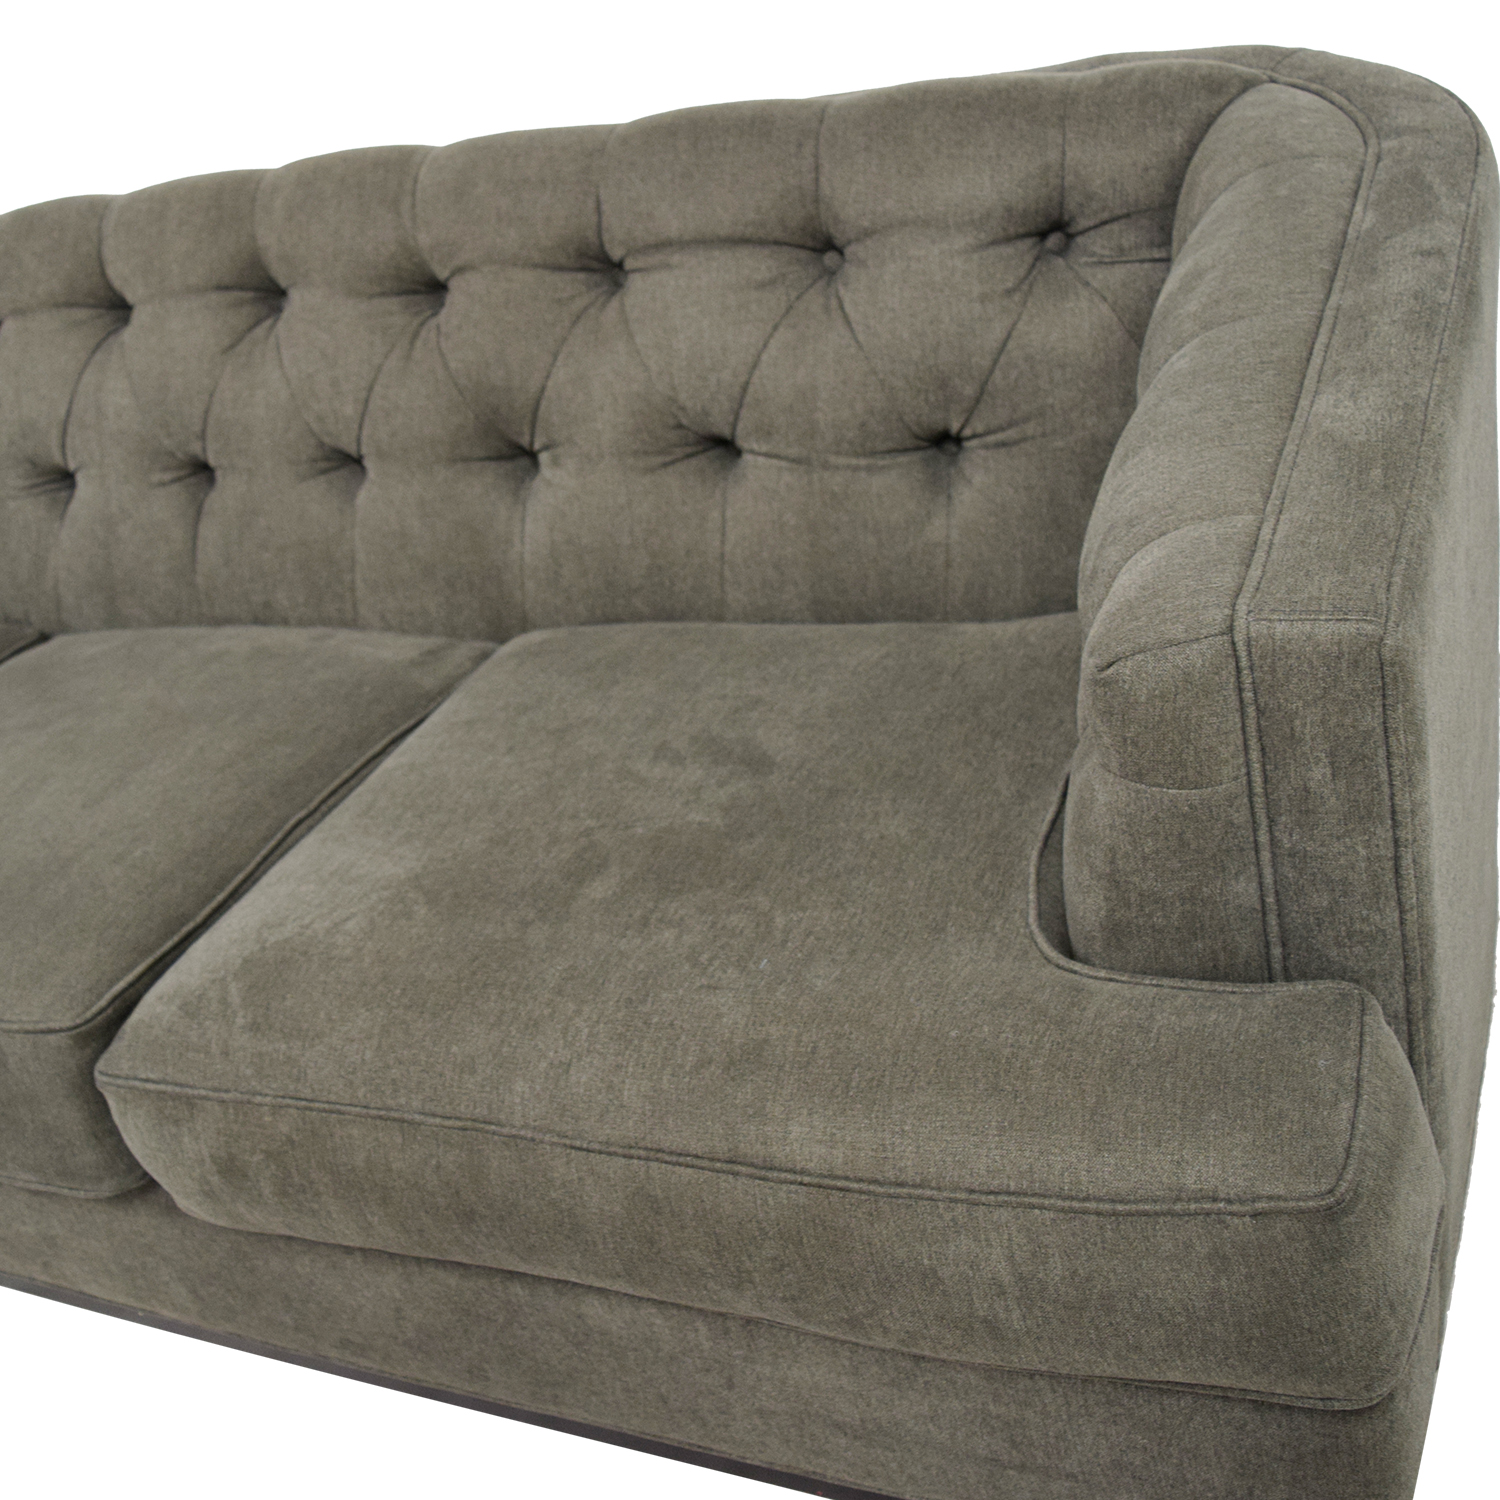 shop Rooms To Go Tufted Sofa Rooms To Go